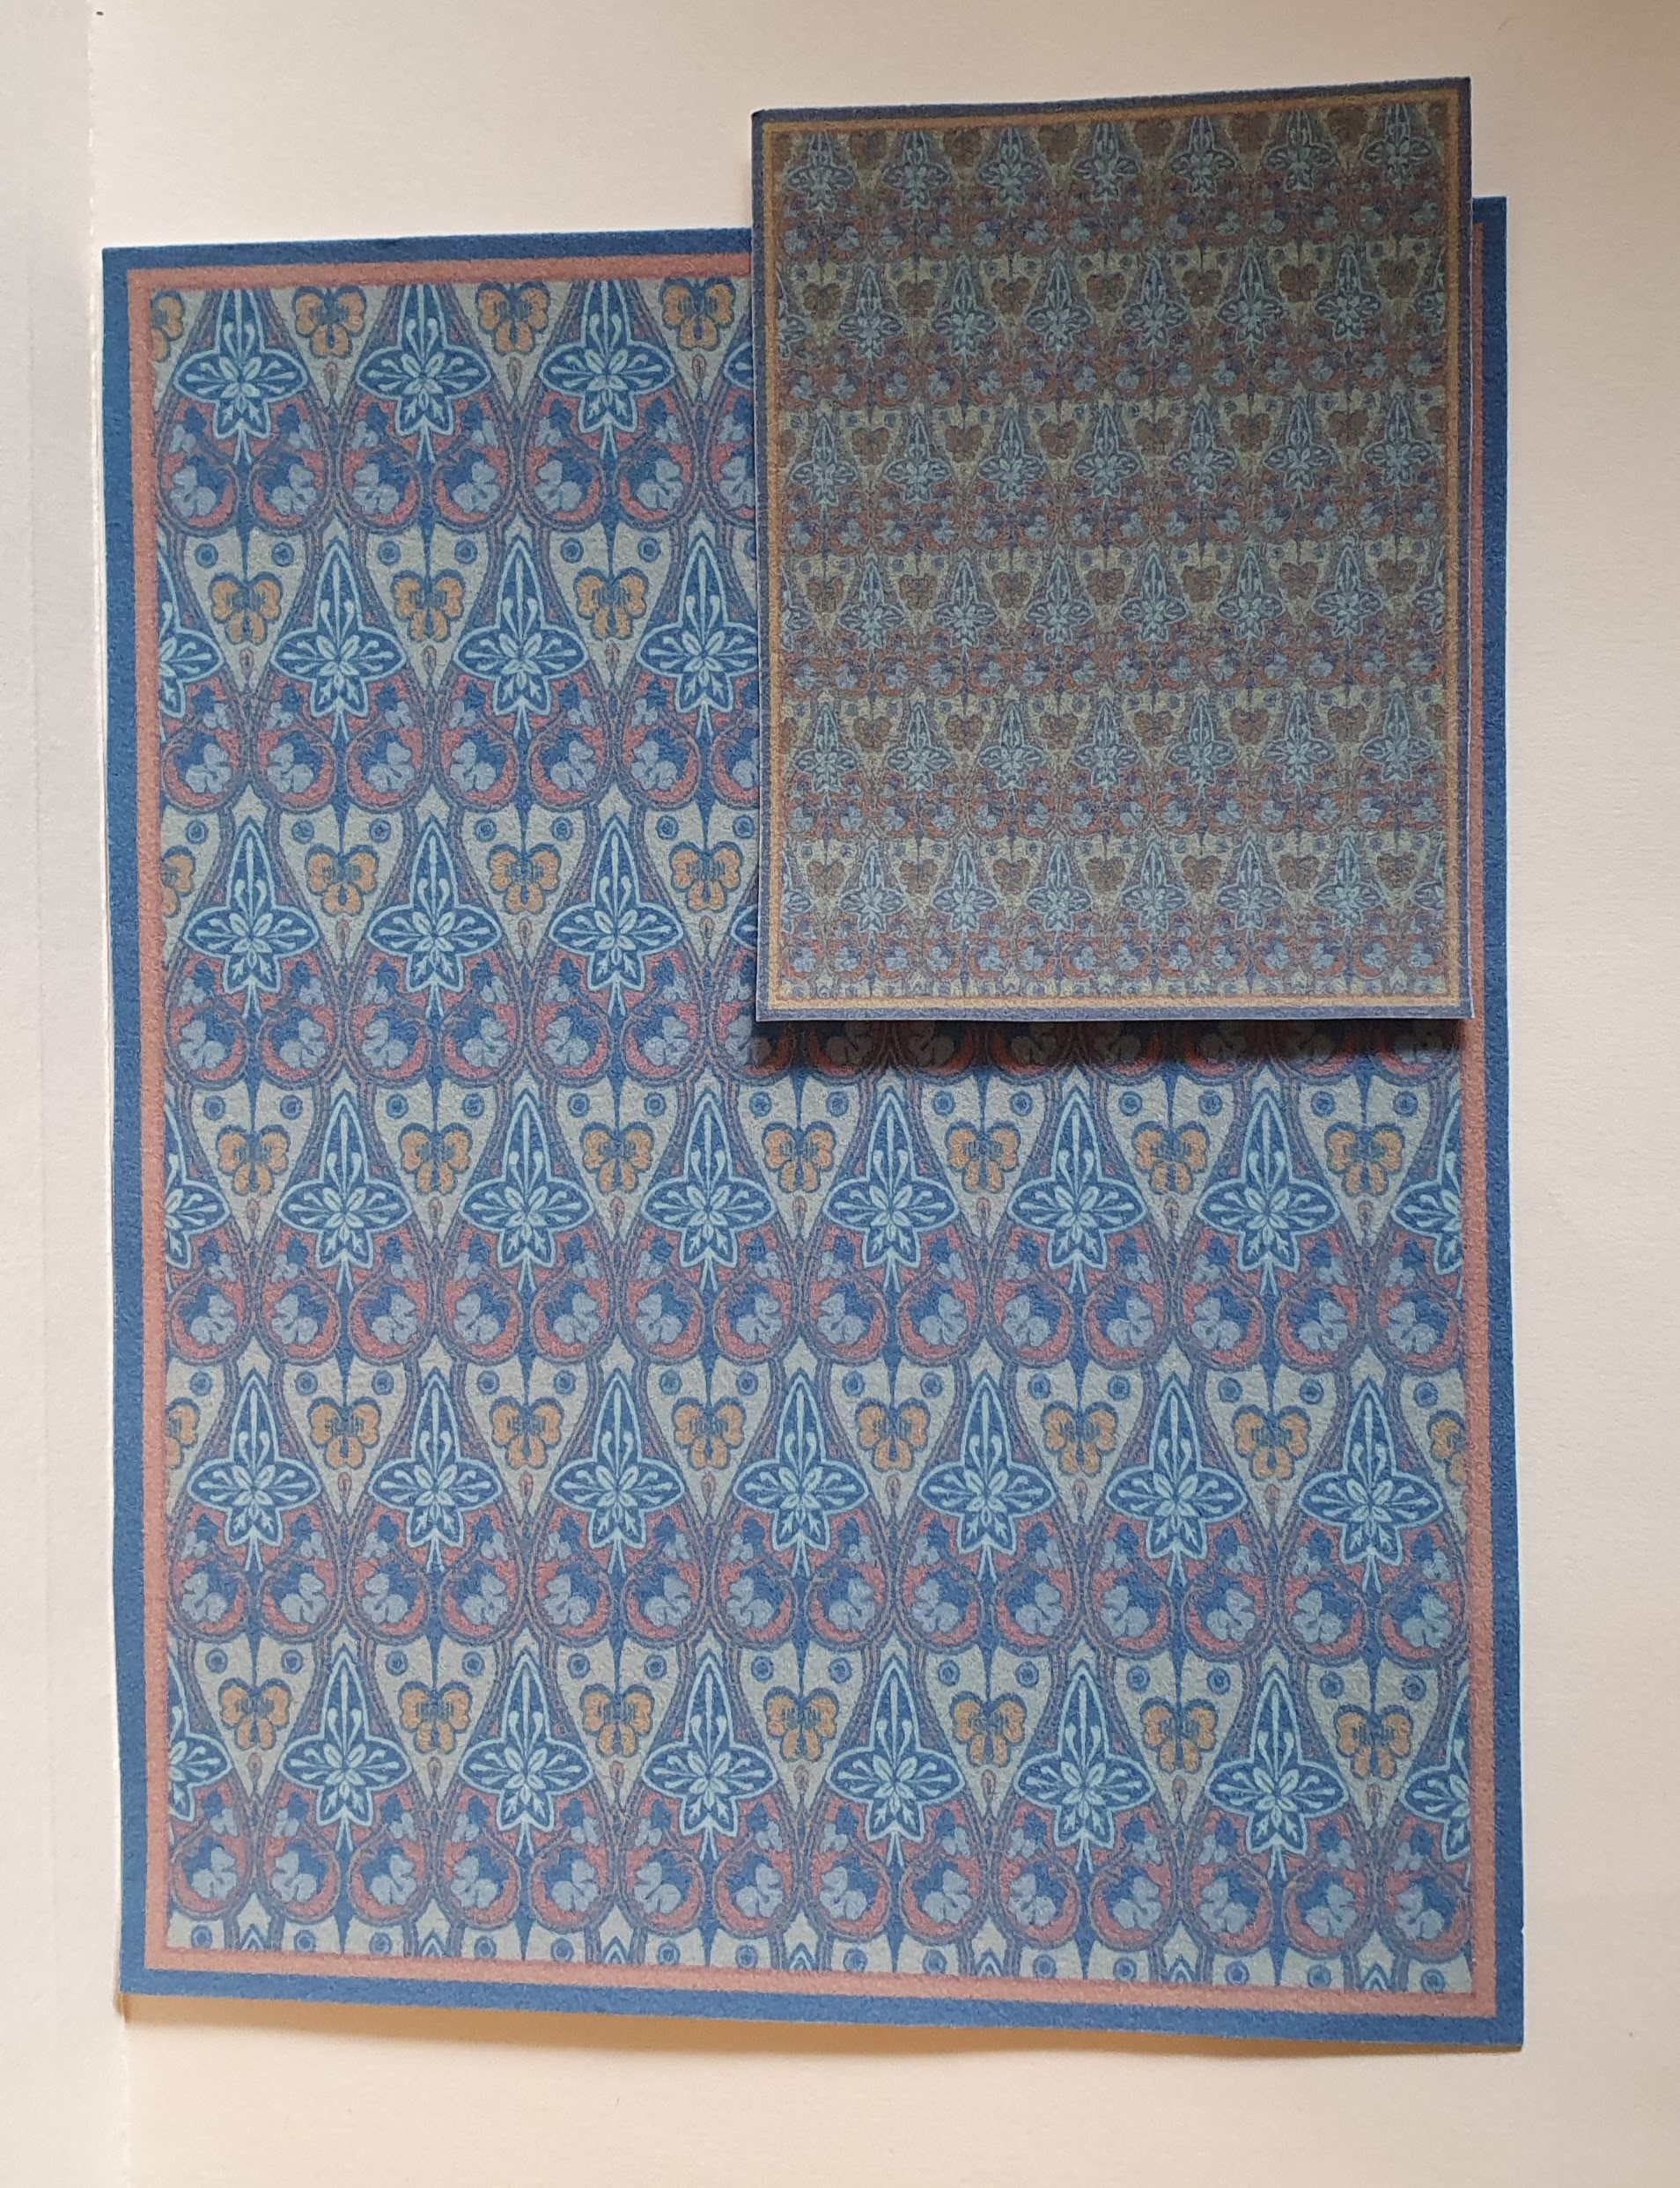 Wm Morris Rugs/Compare: Size/Colour